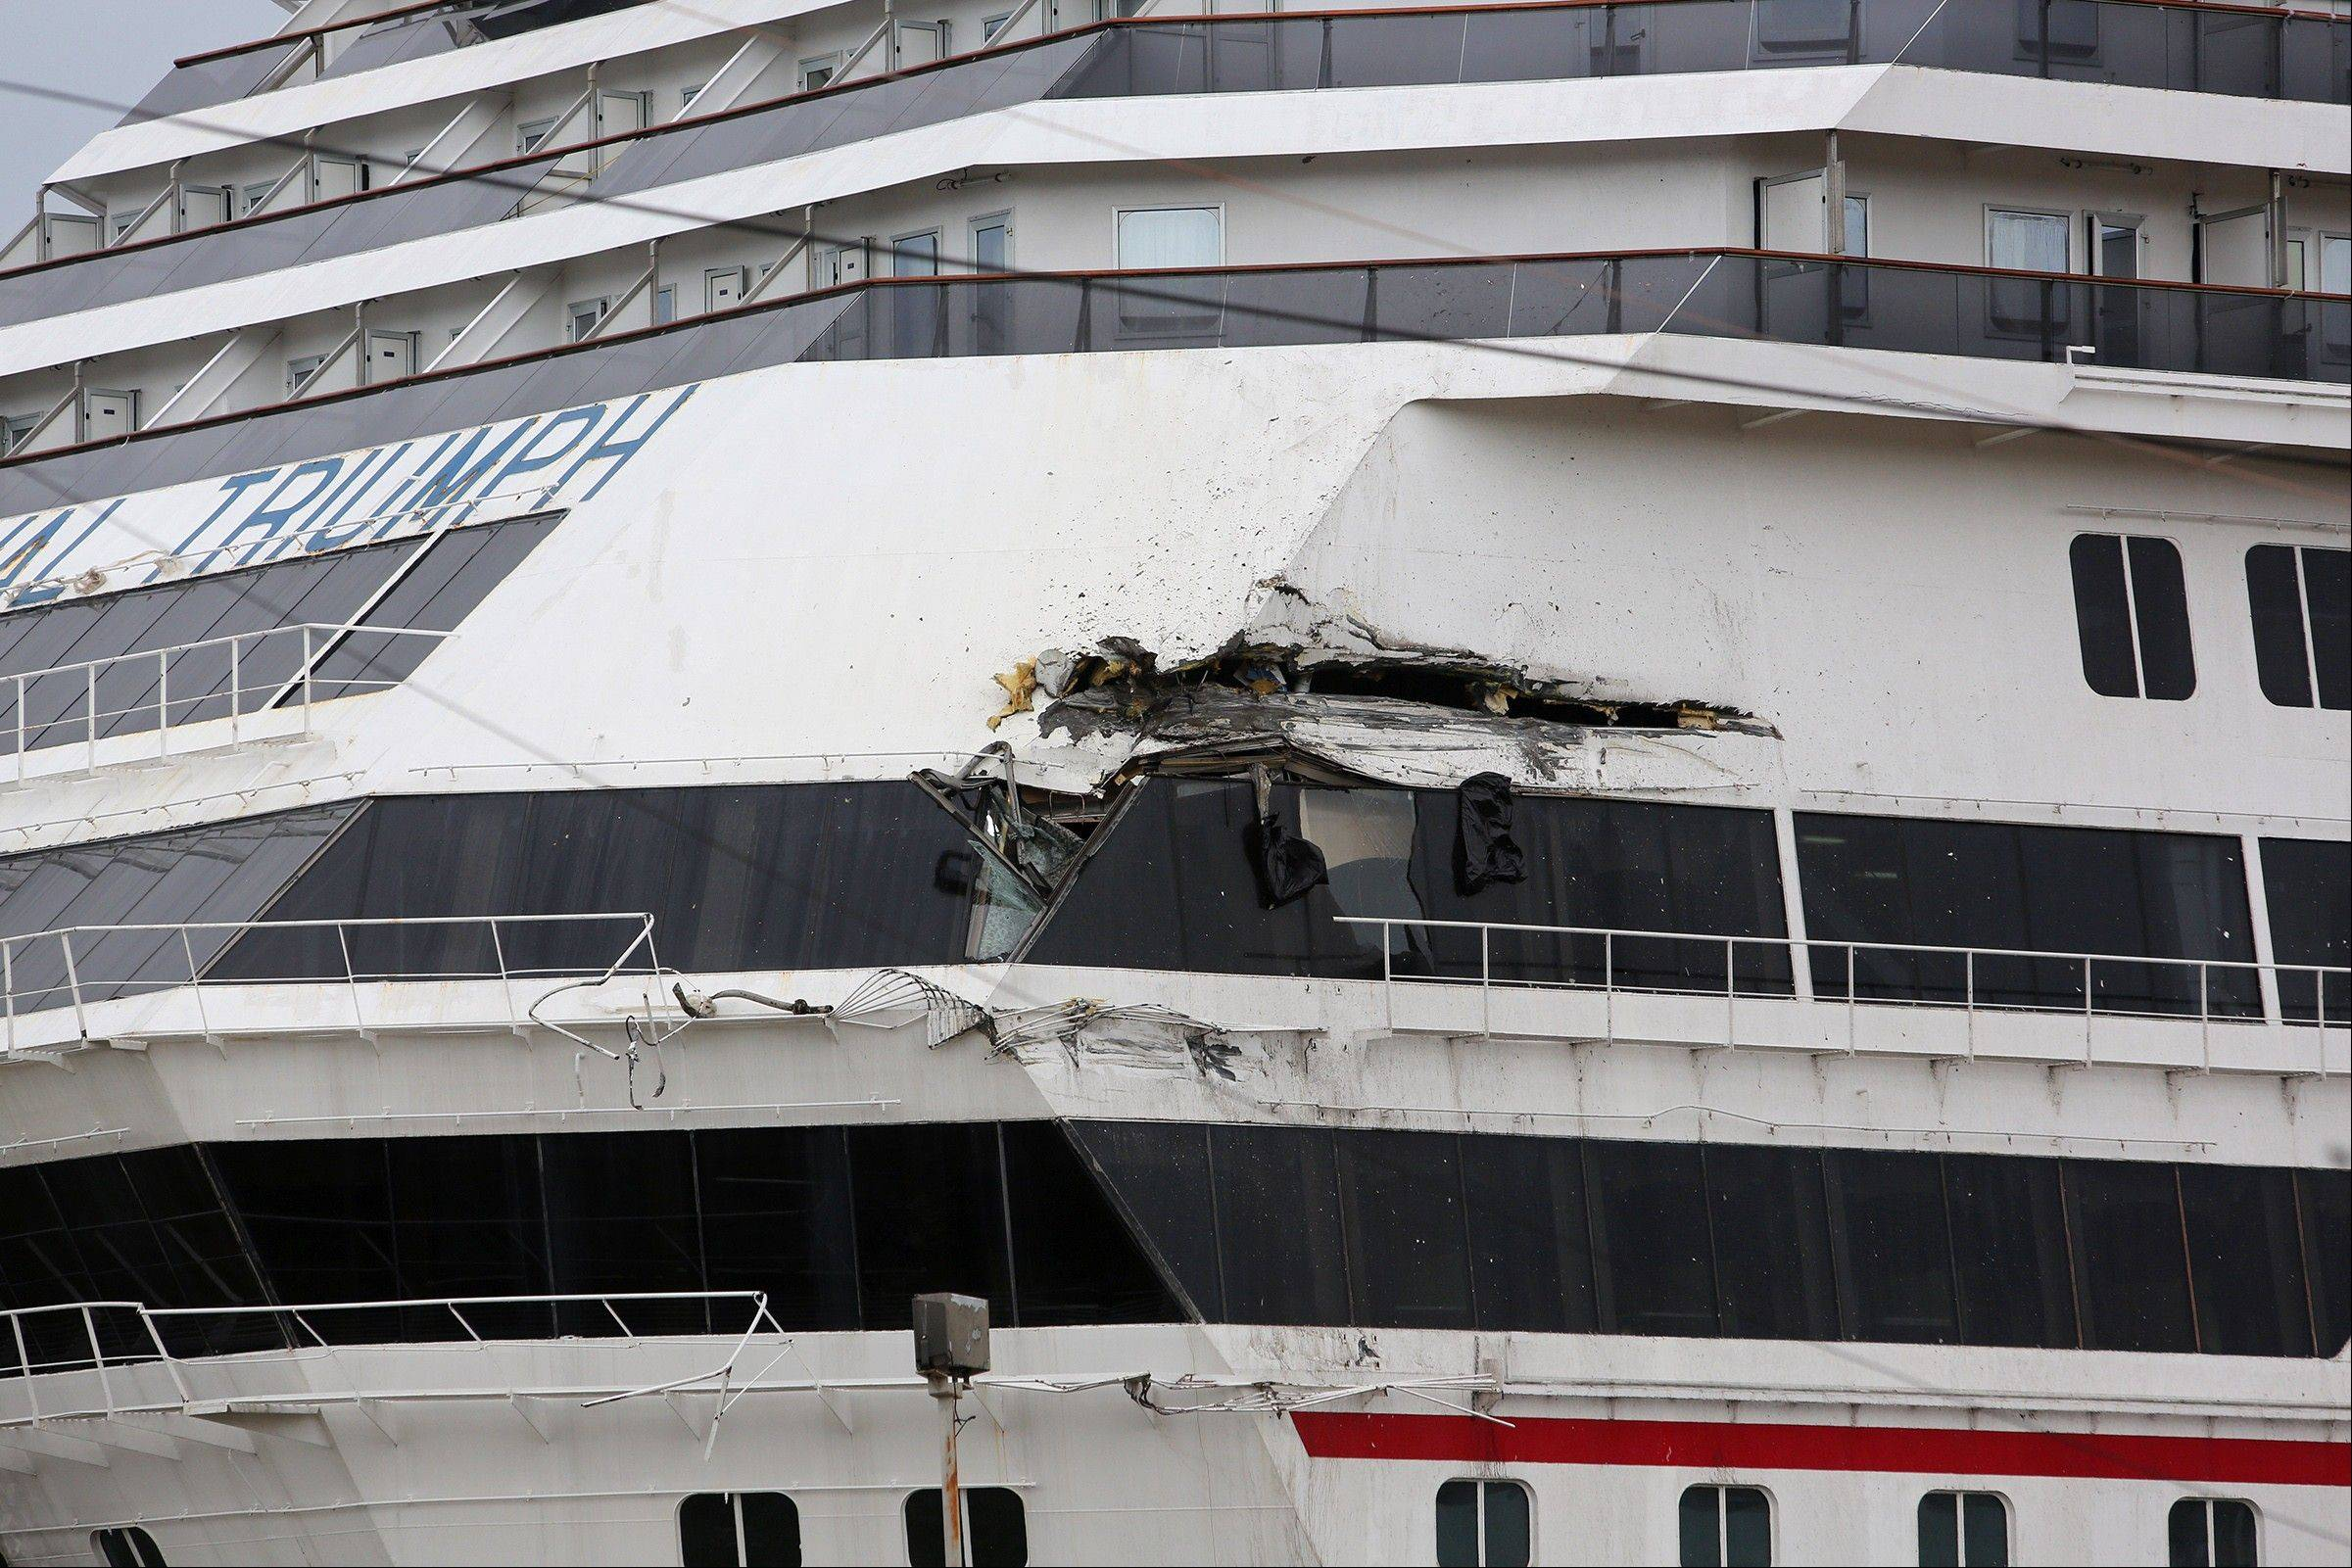 The Carnival cruise ship Triumph is damaged after the being dislodged from its mooring at BAE shipyard during high winds Wednesday, April 3, 2013 in Mobile, Ala. Triumph was disabled Feb. 10 by an engine fire that stranded thousands of passengers onboard for days in the Gulf. It was towed into port in Mobile.